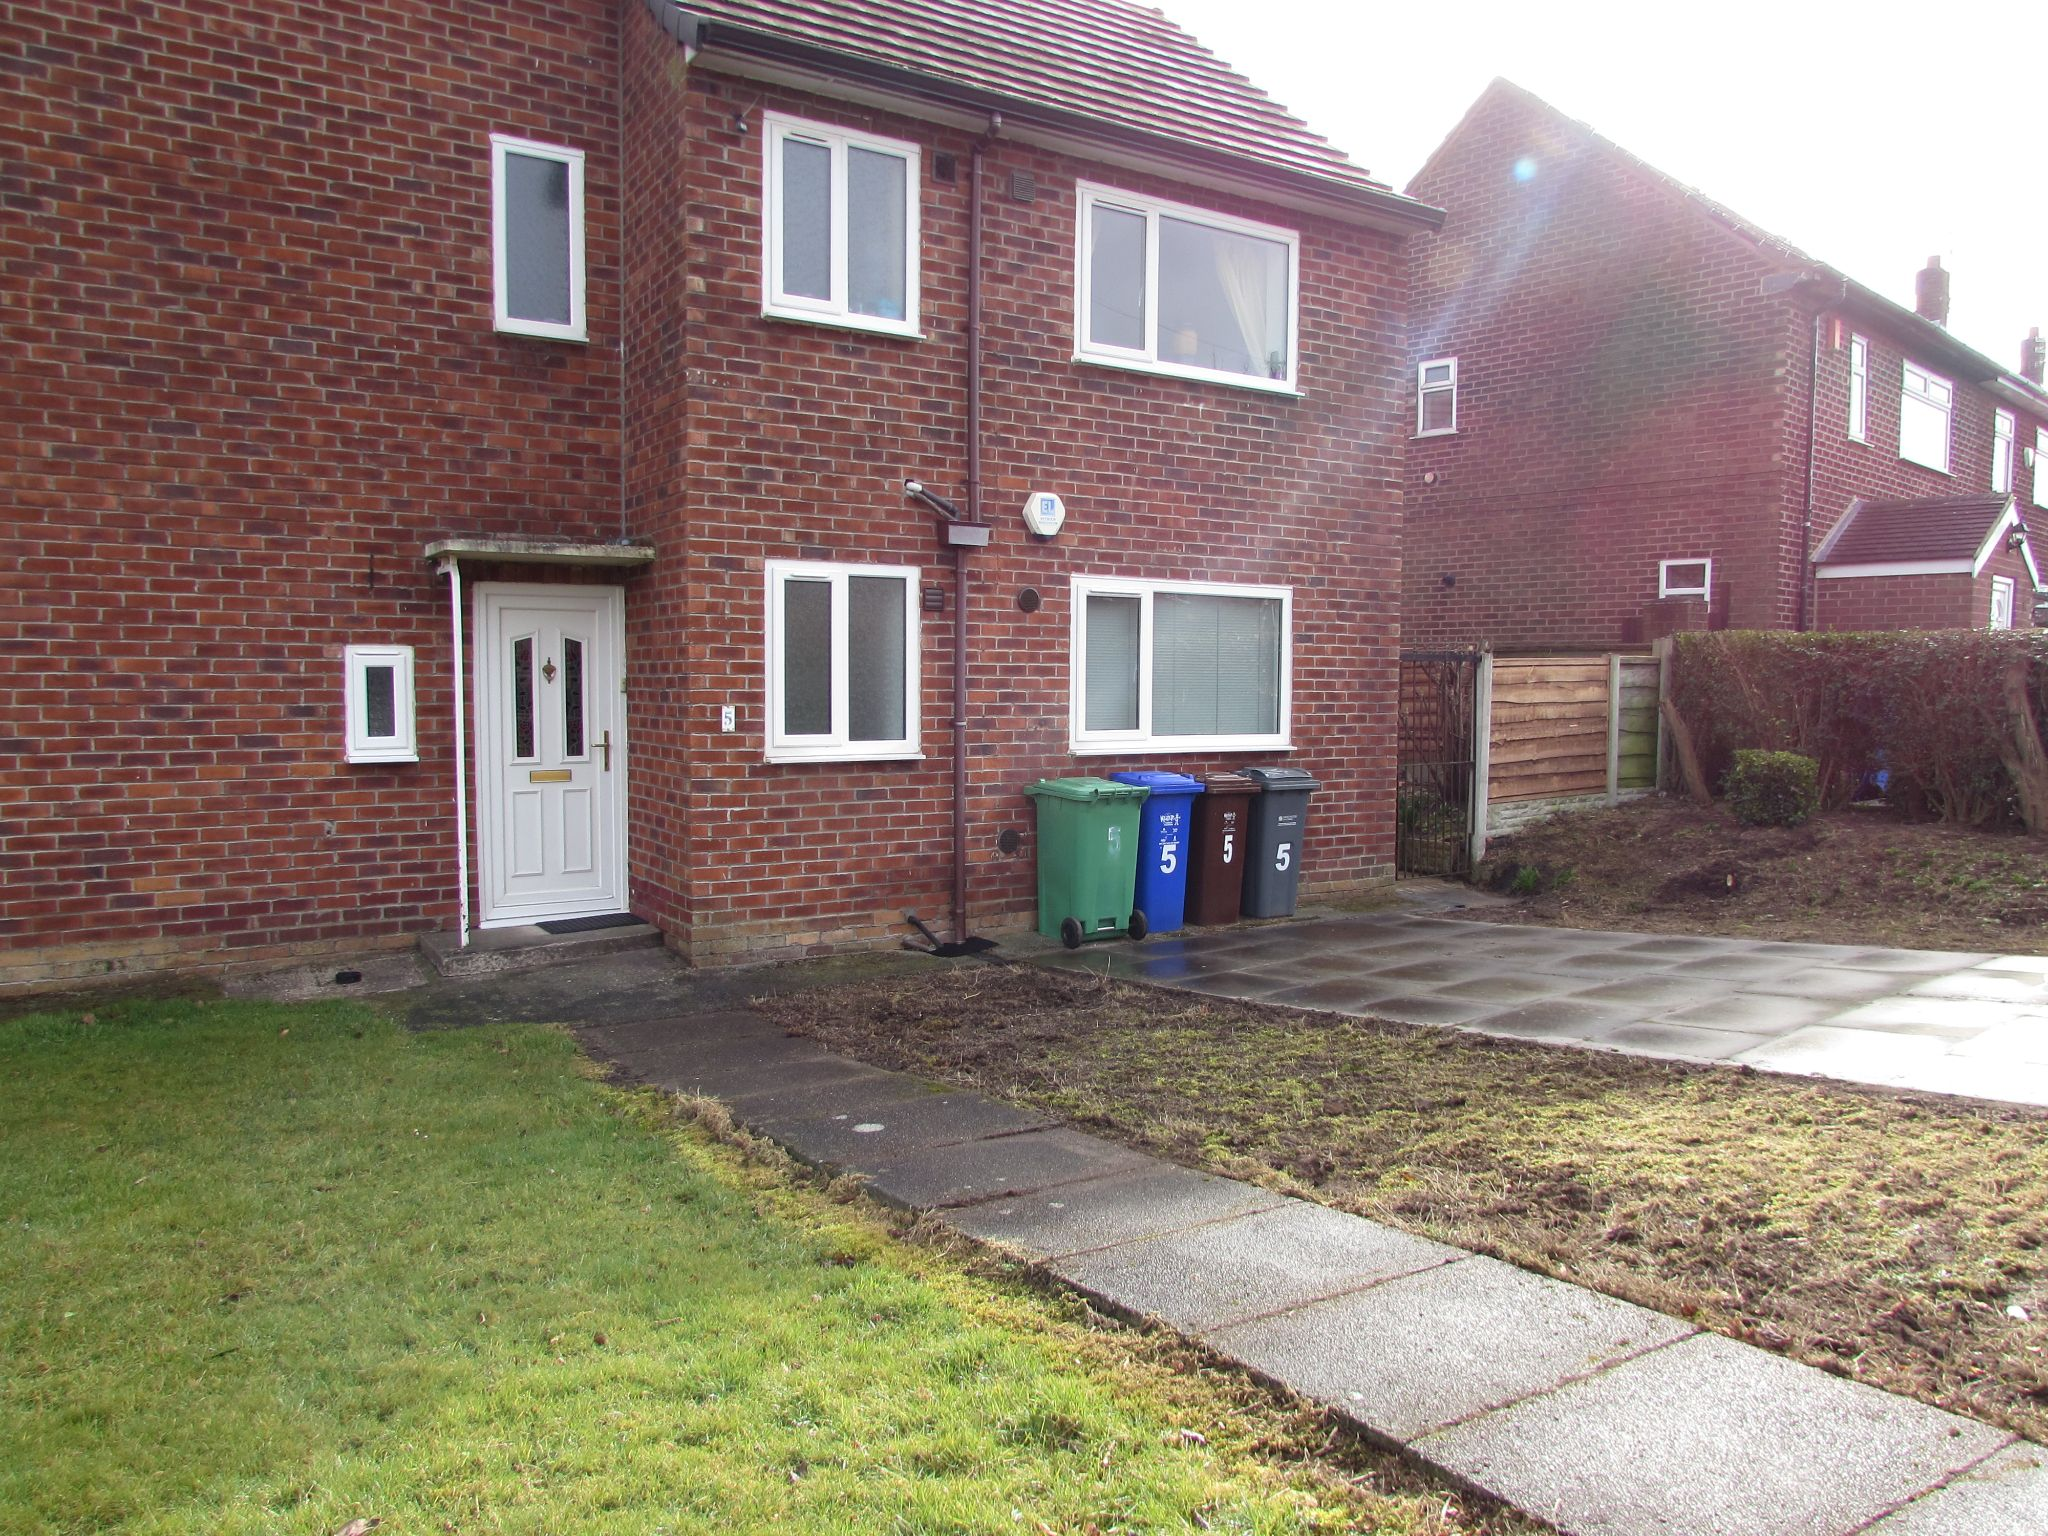 2 Bedroom Ground Floor Flat/apartment To Rent - Photograph 12